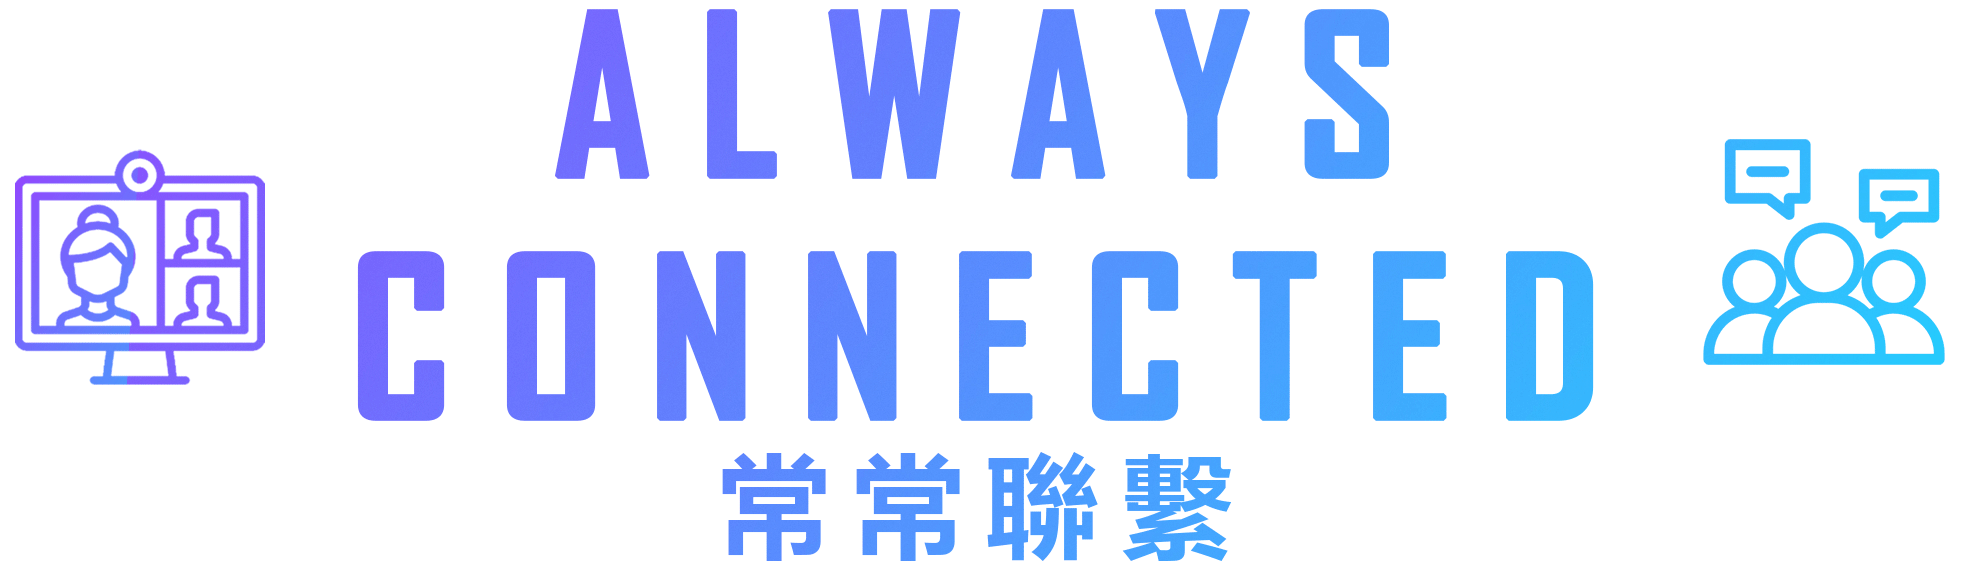 Always-Connected---Title-text-only